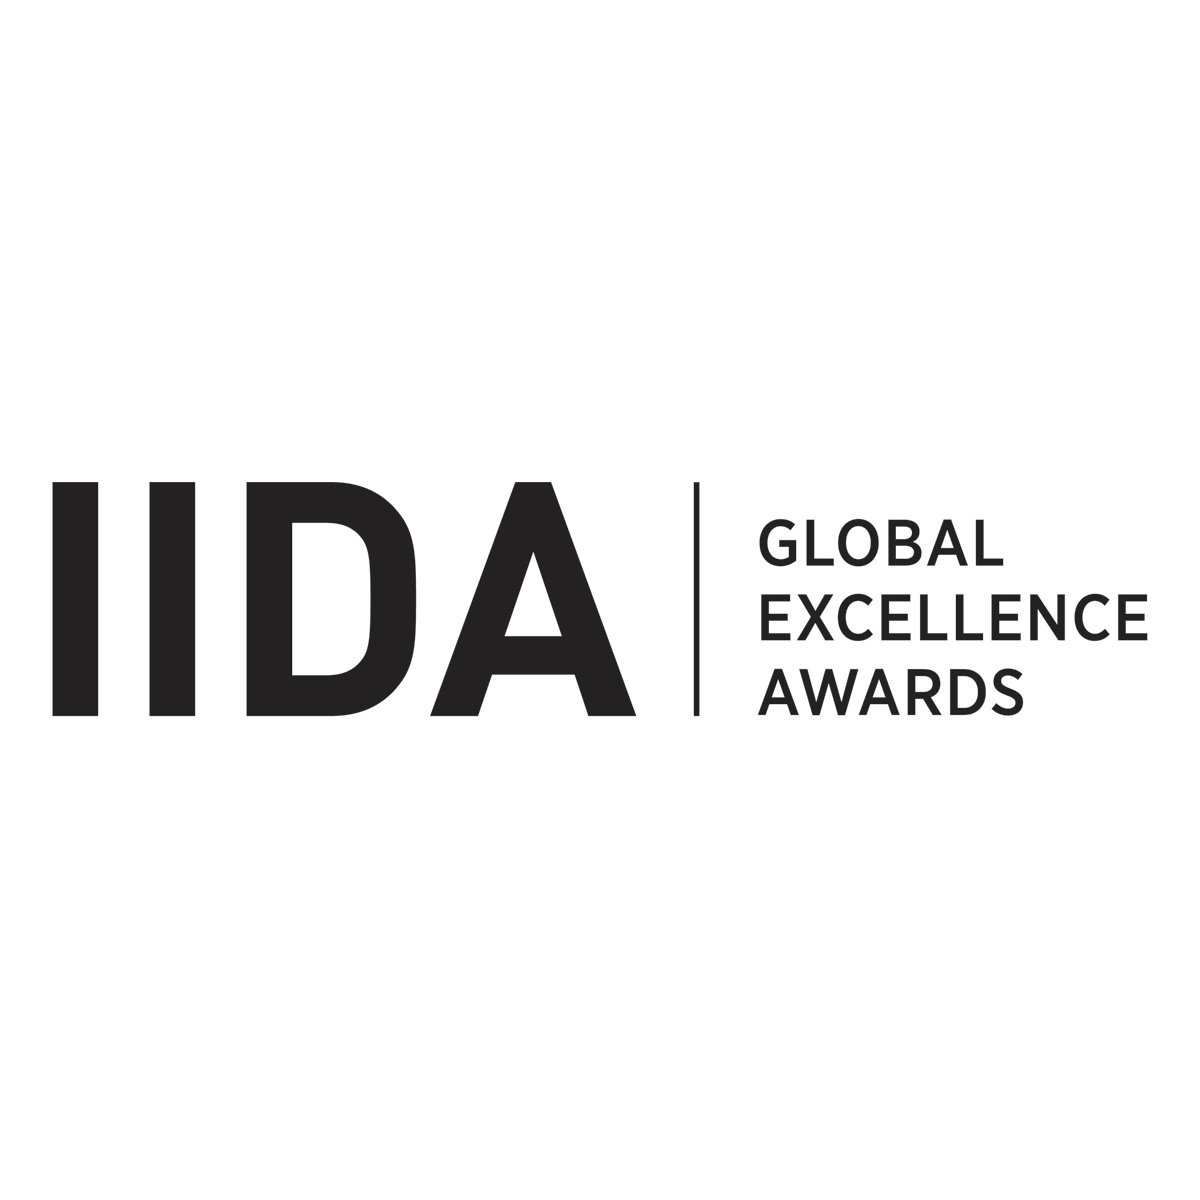 IIDA Announces the Winners of the 9th Annual Global Excellence Awards